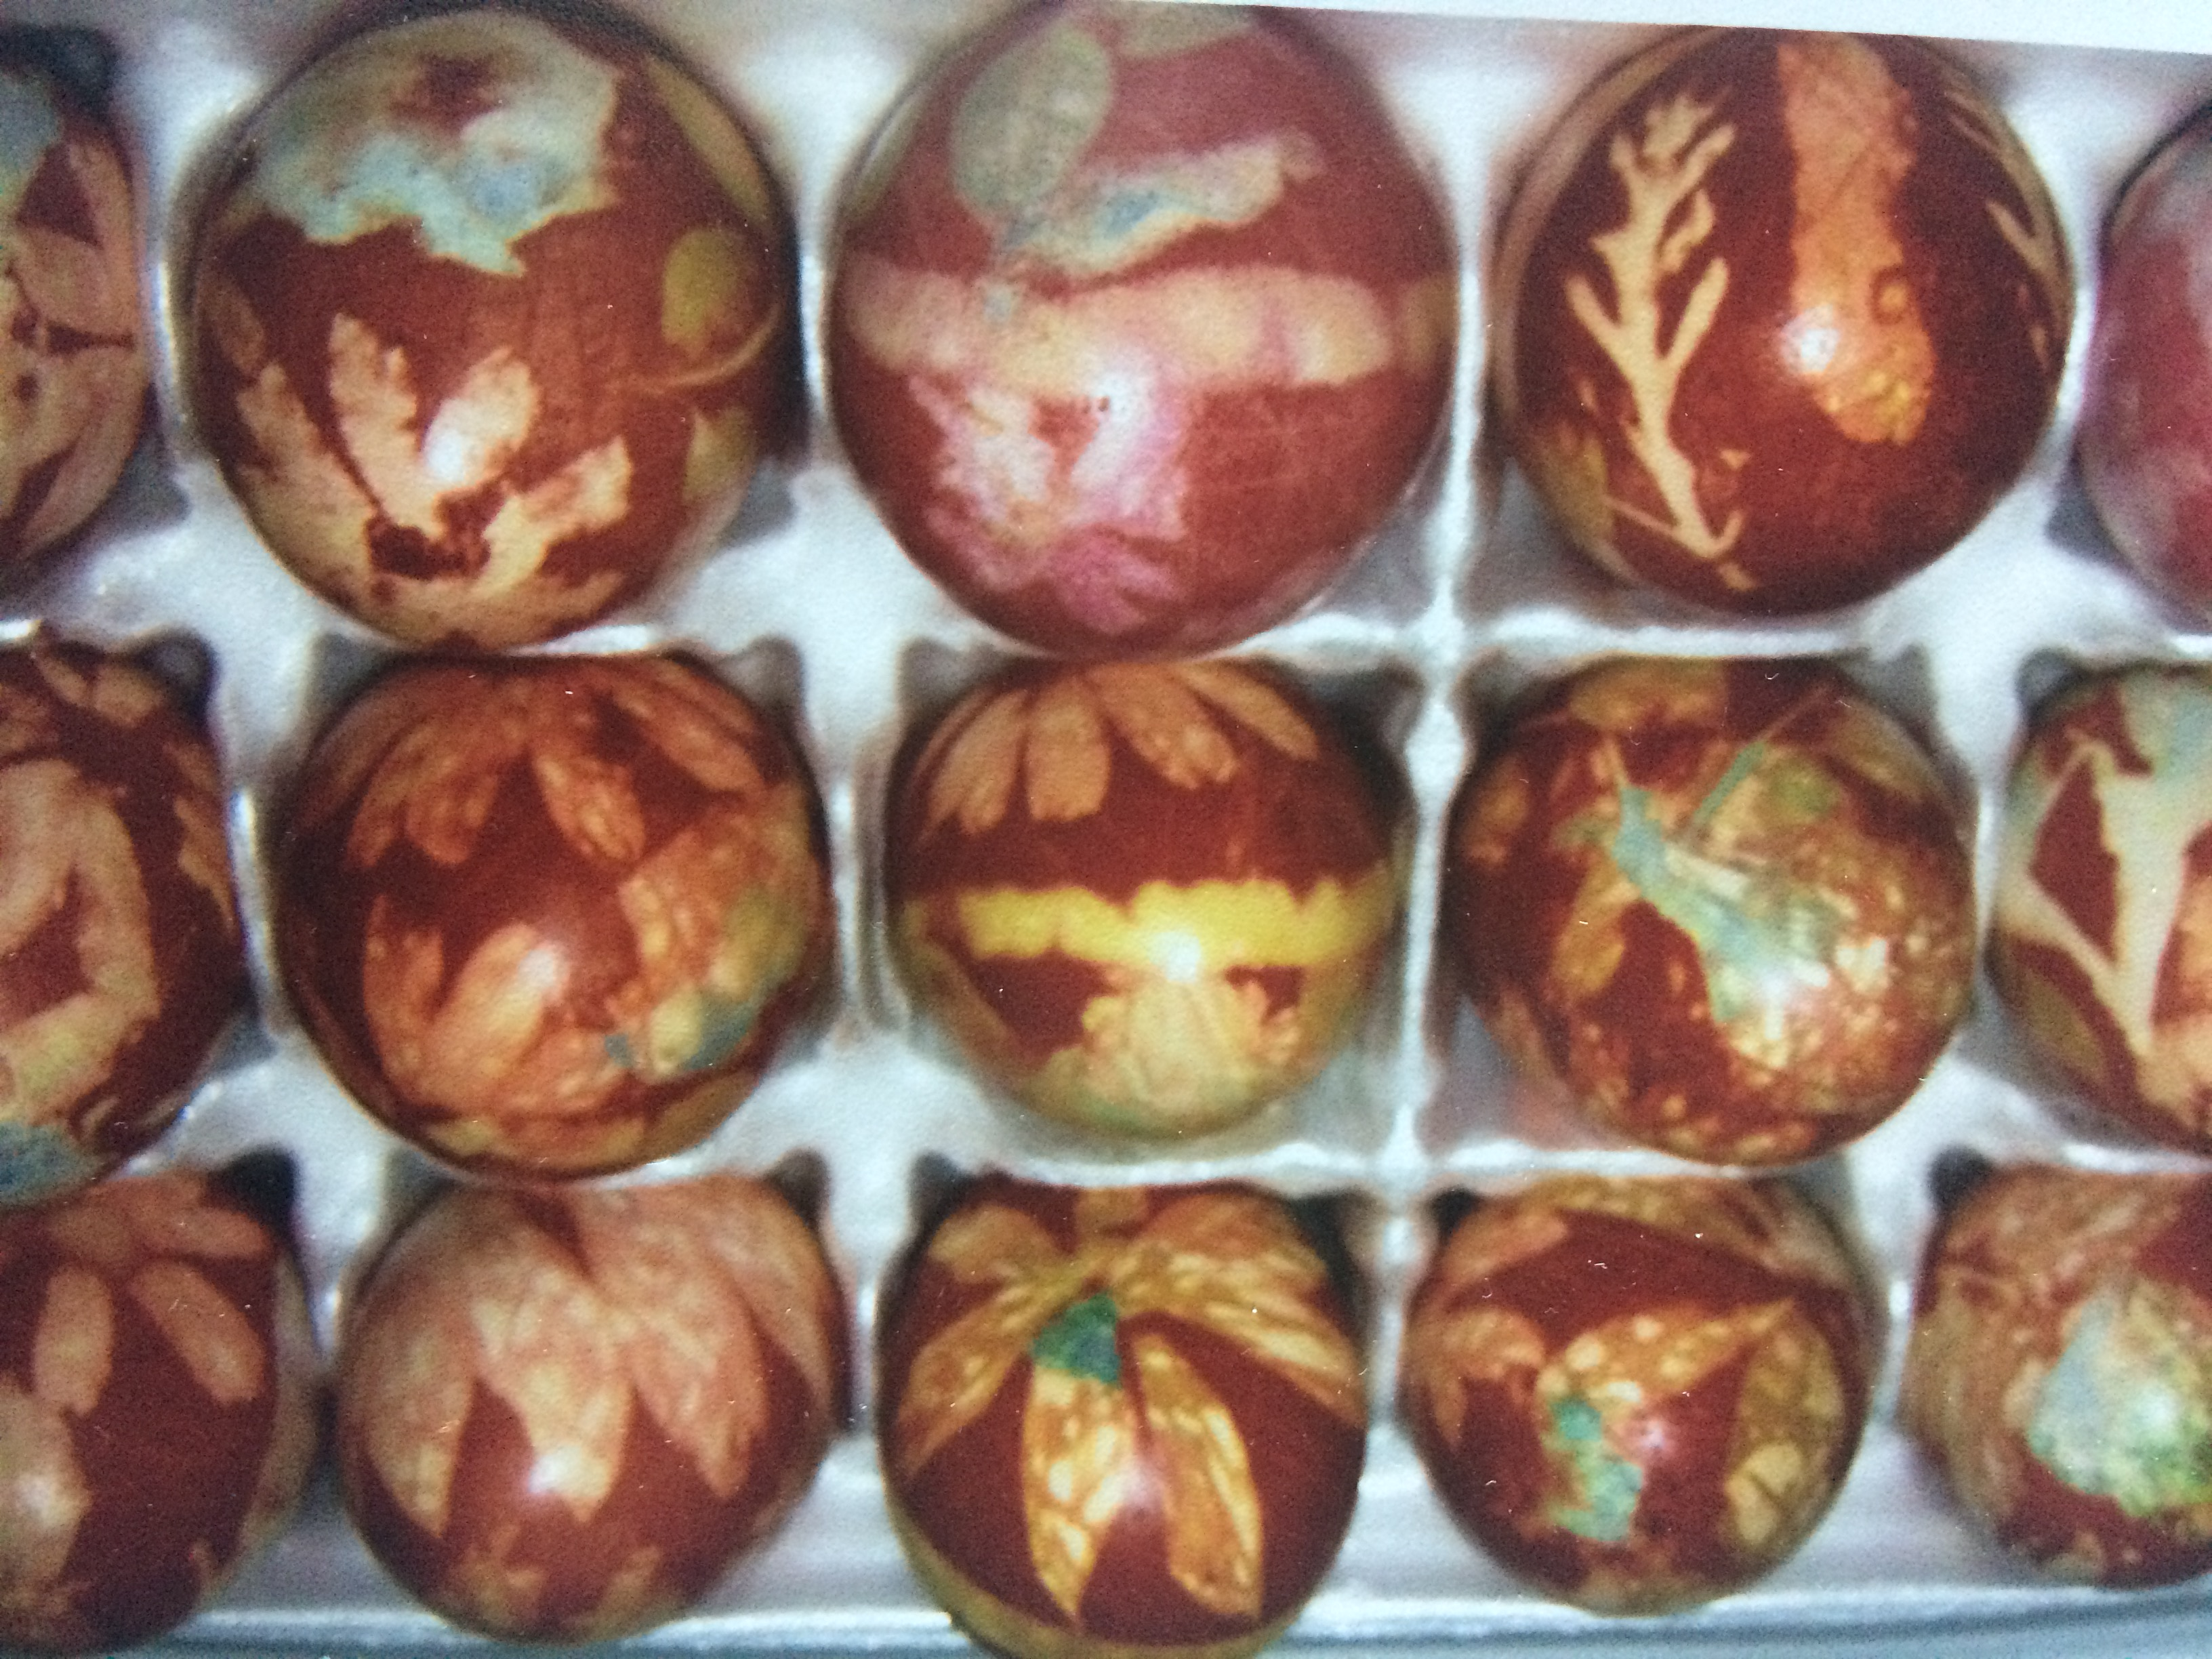 Eggs dyed in the Swiss tradition